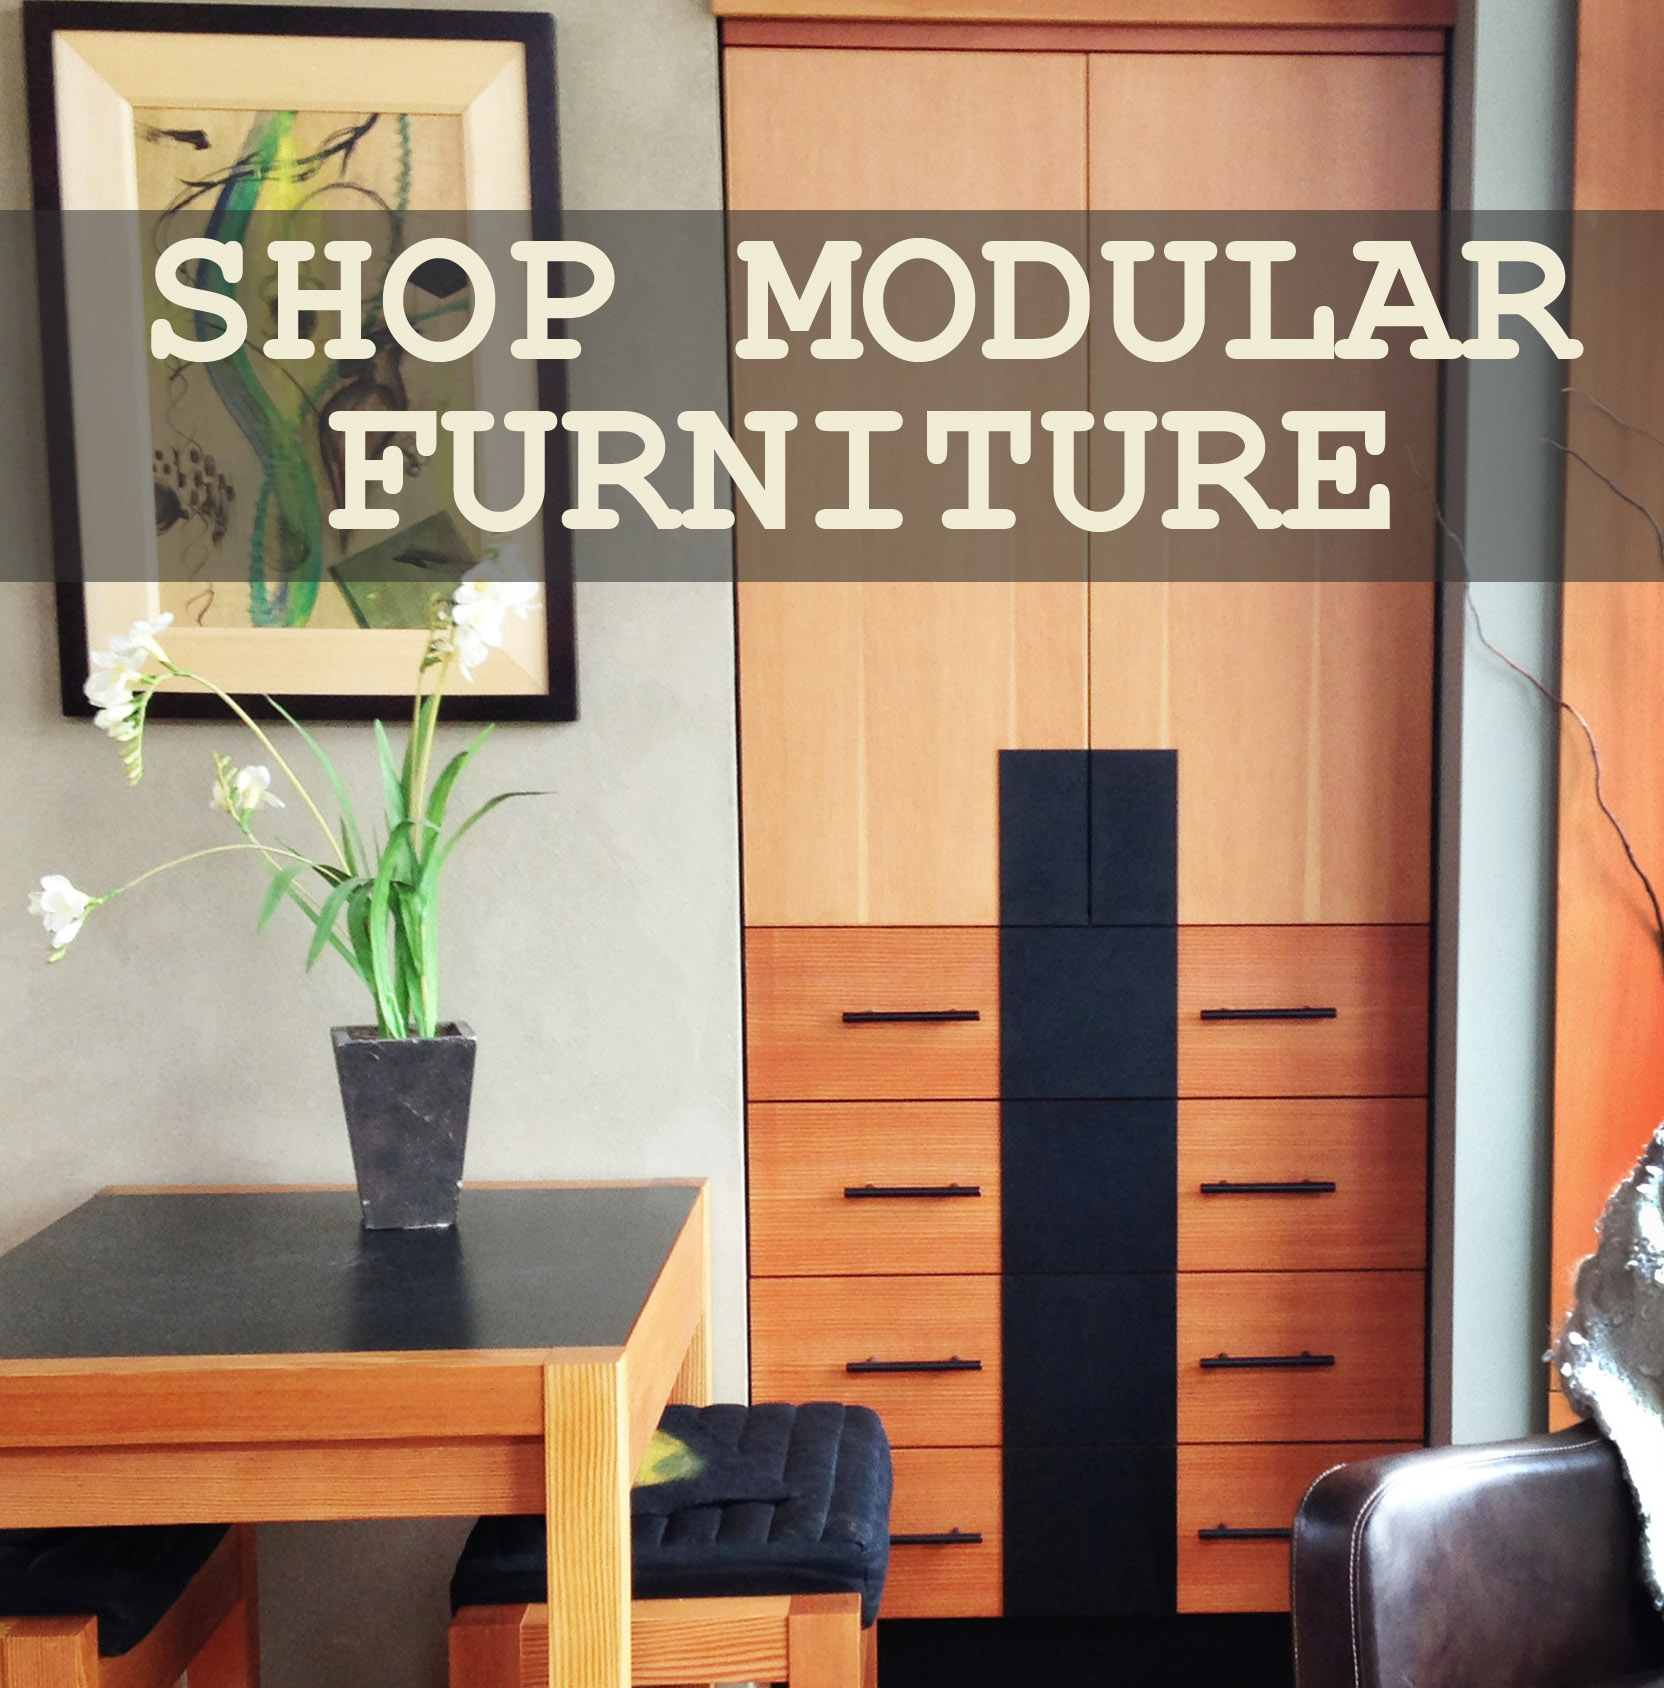 Modular furniture thumbnail copy